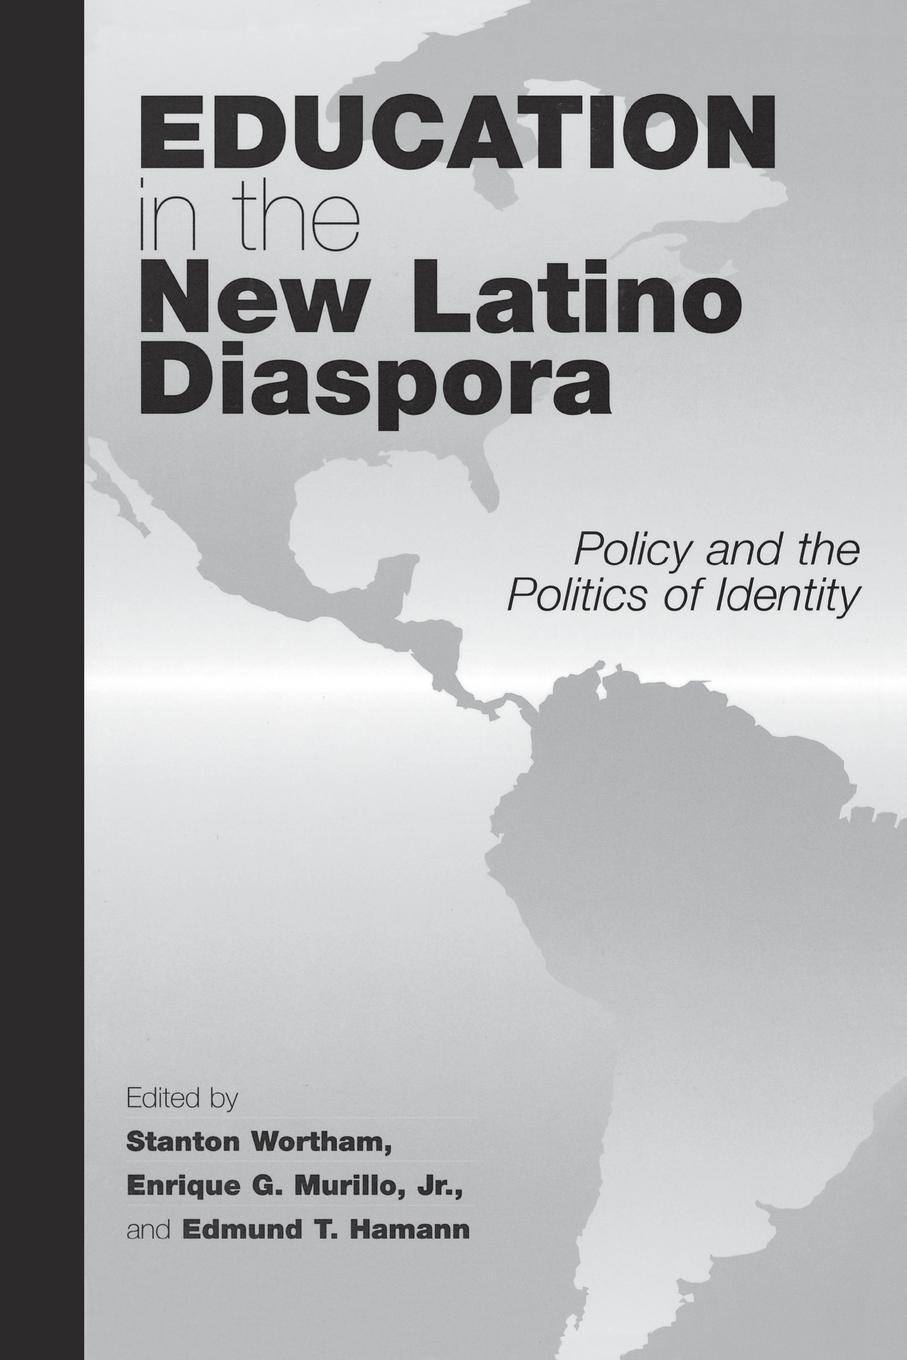 Education in the New Latino Diaspora. Policy and the Politics of Identity mary p mckeown moak christopher m mullin higher education finance research policy politics and practice